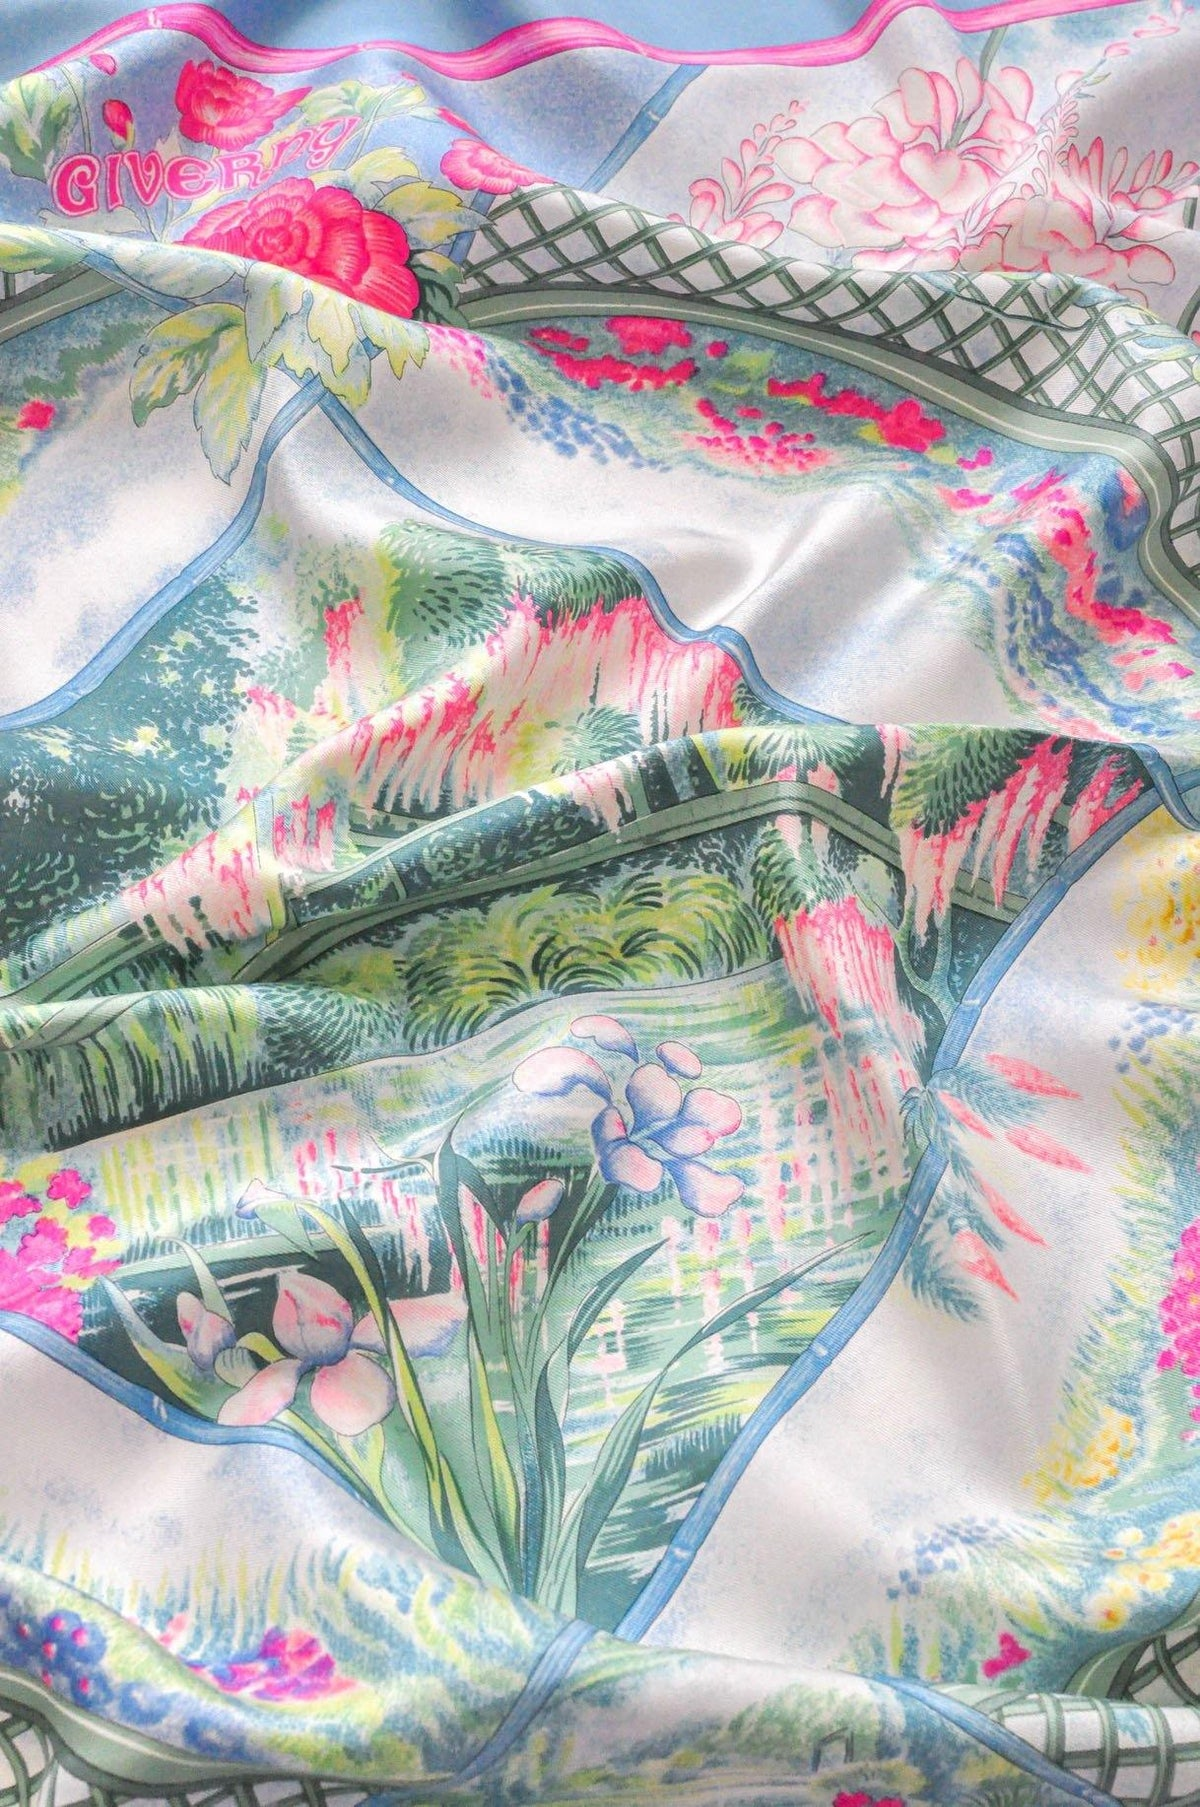 Vintage Hermes Giverny Scarf from Sweet and Spark